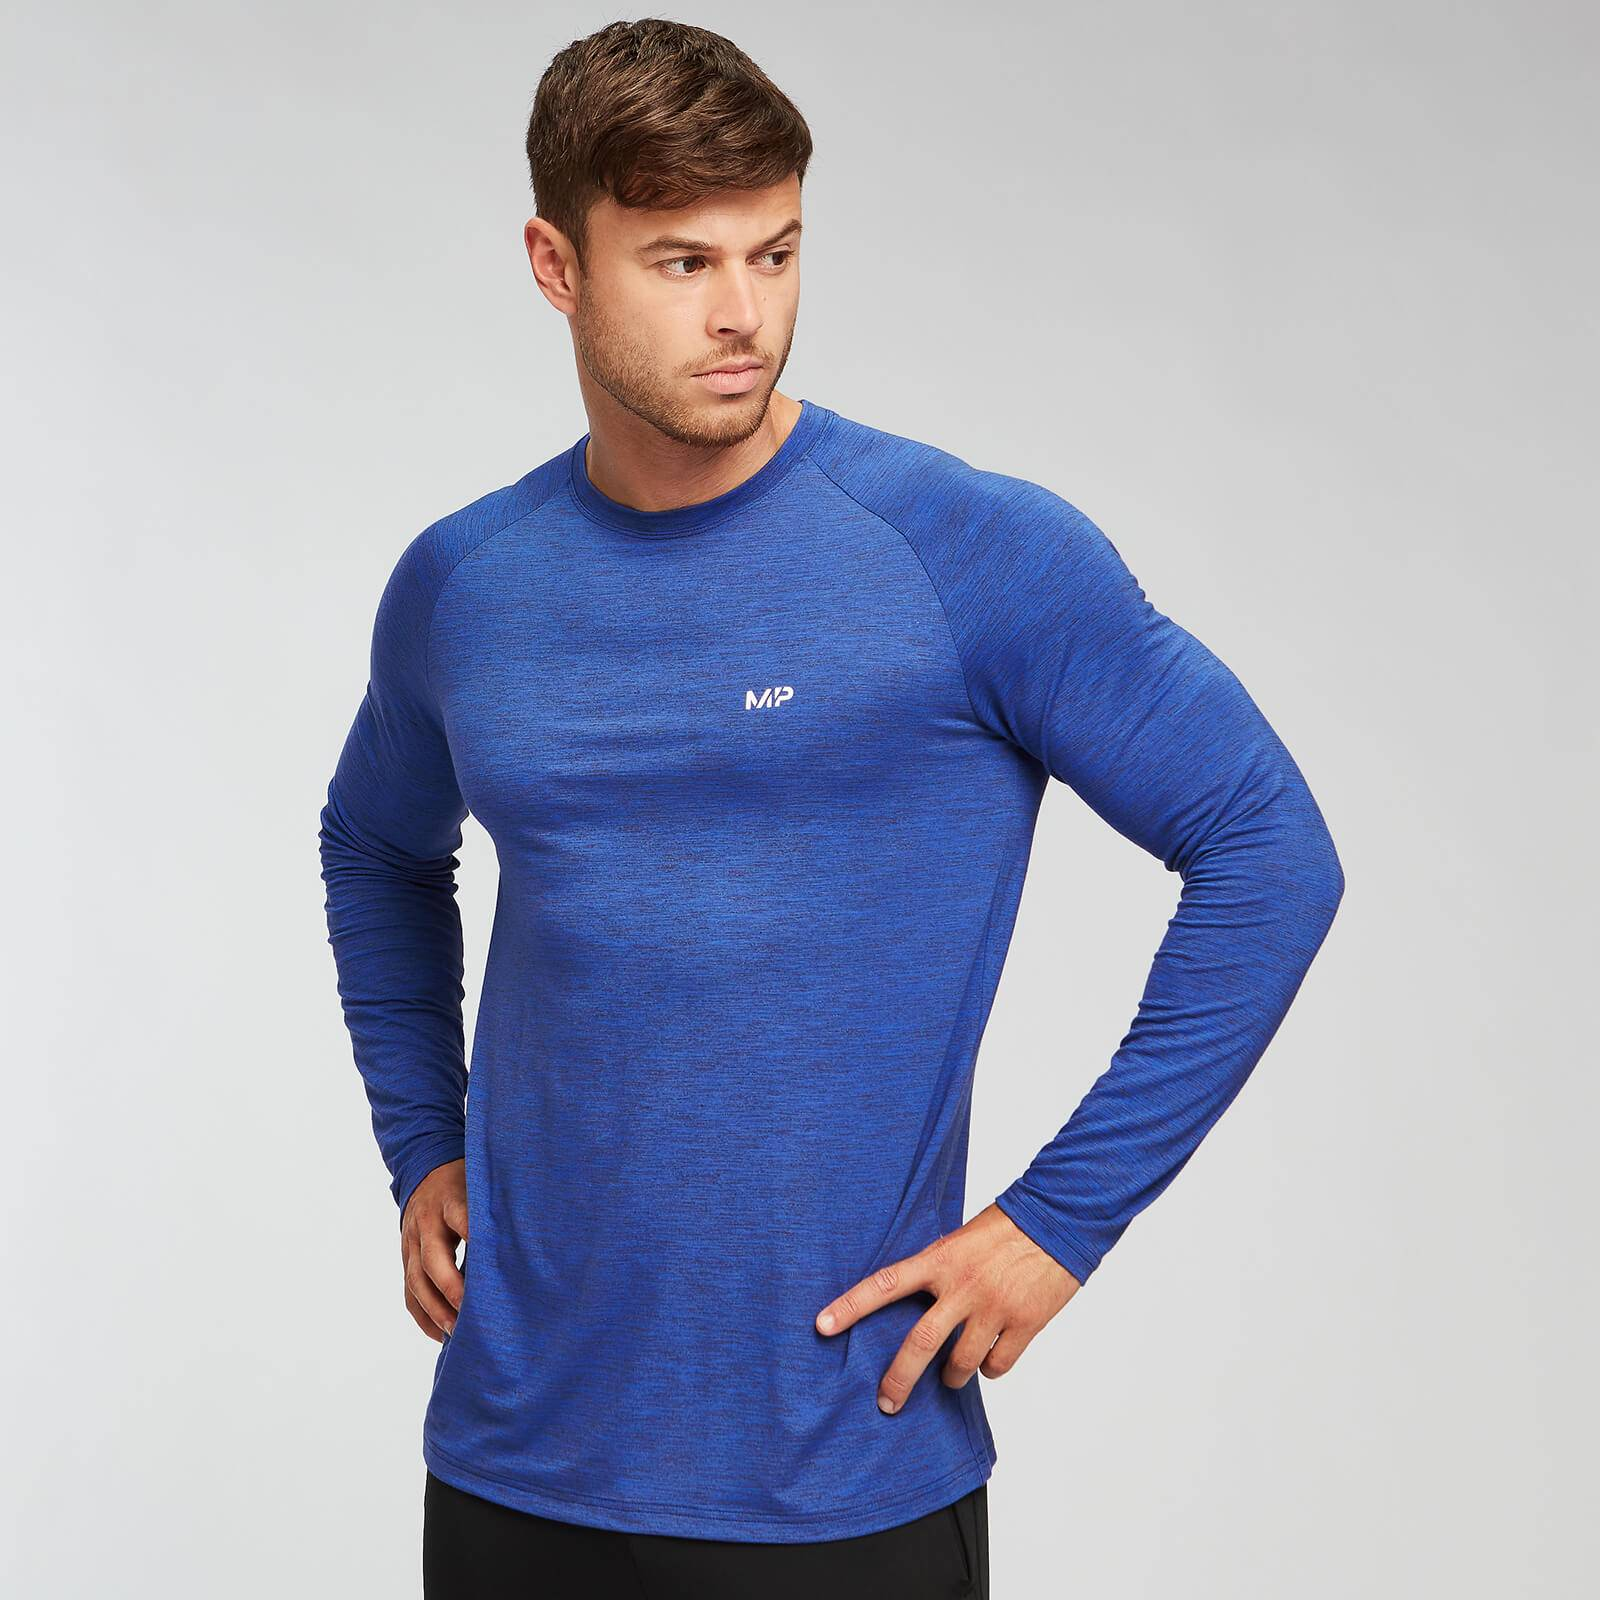 Myprotein T-shirt Performance Long Sleeve MP - Blu cobalto/Nero - L